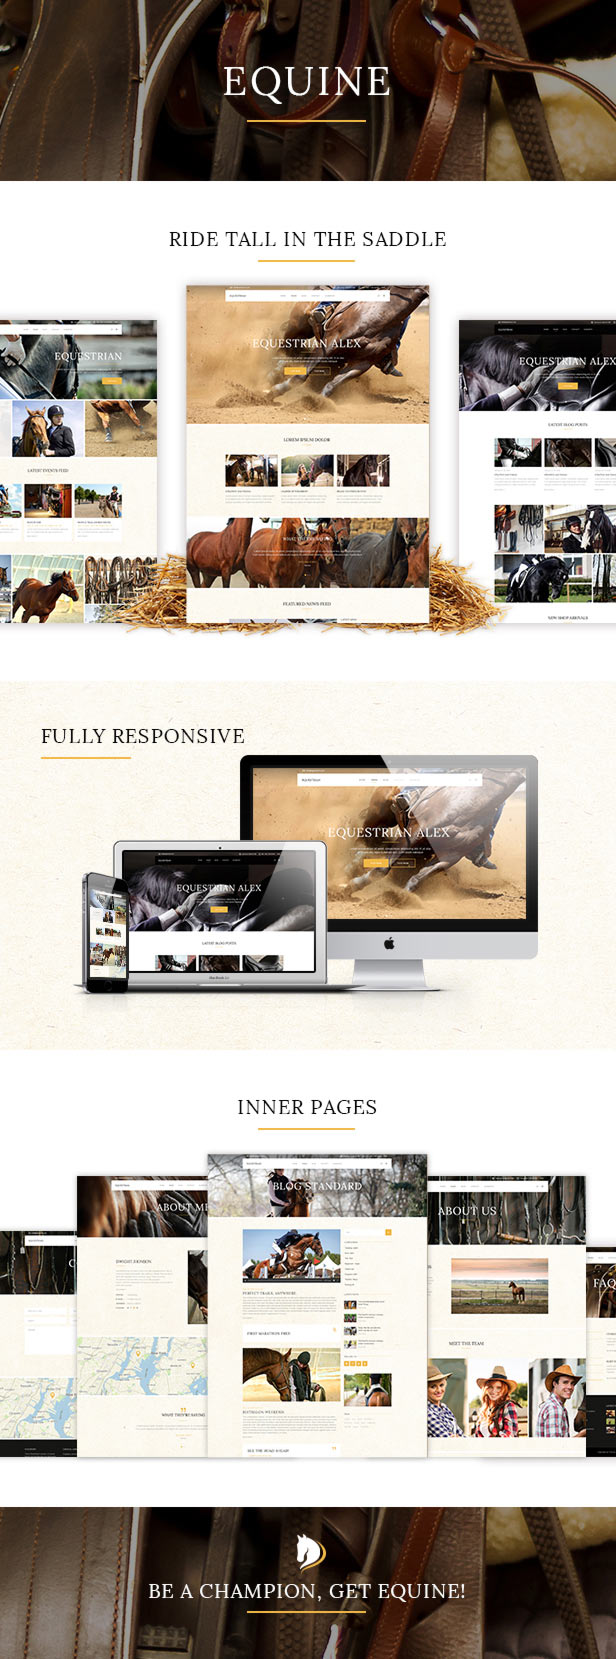 WordPress theme Equine - An Equestrian and Horse Riding Club Theme (Miscellaneous)